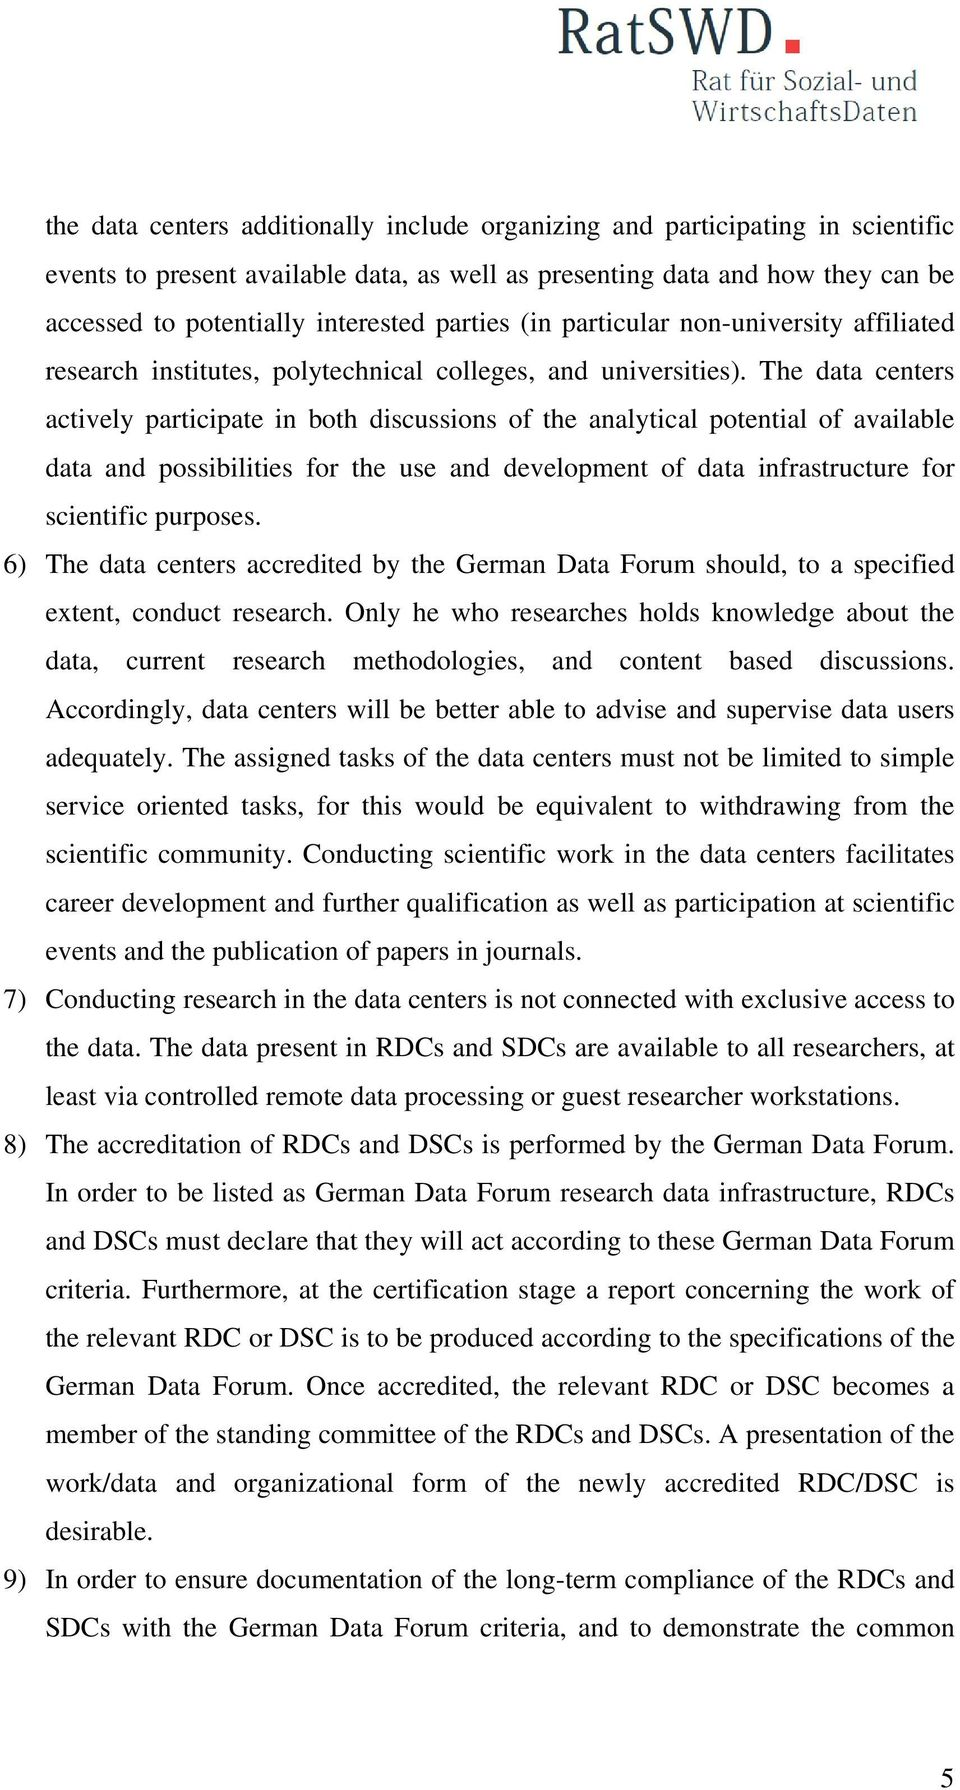 The data centers actively participate in both discussions of the analytical potential of available data and possibilities for the use and development of data infrastructure for scientific purposes.